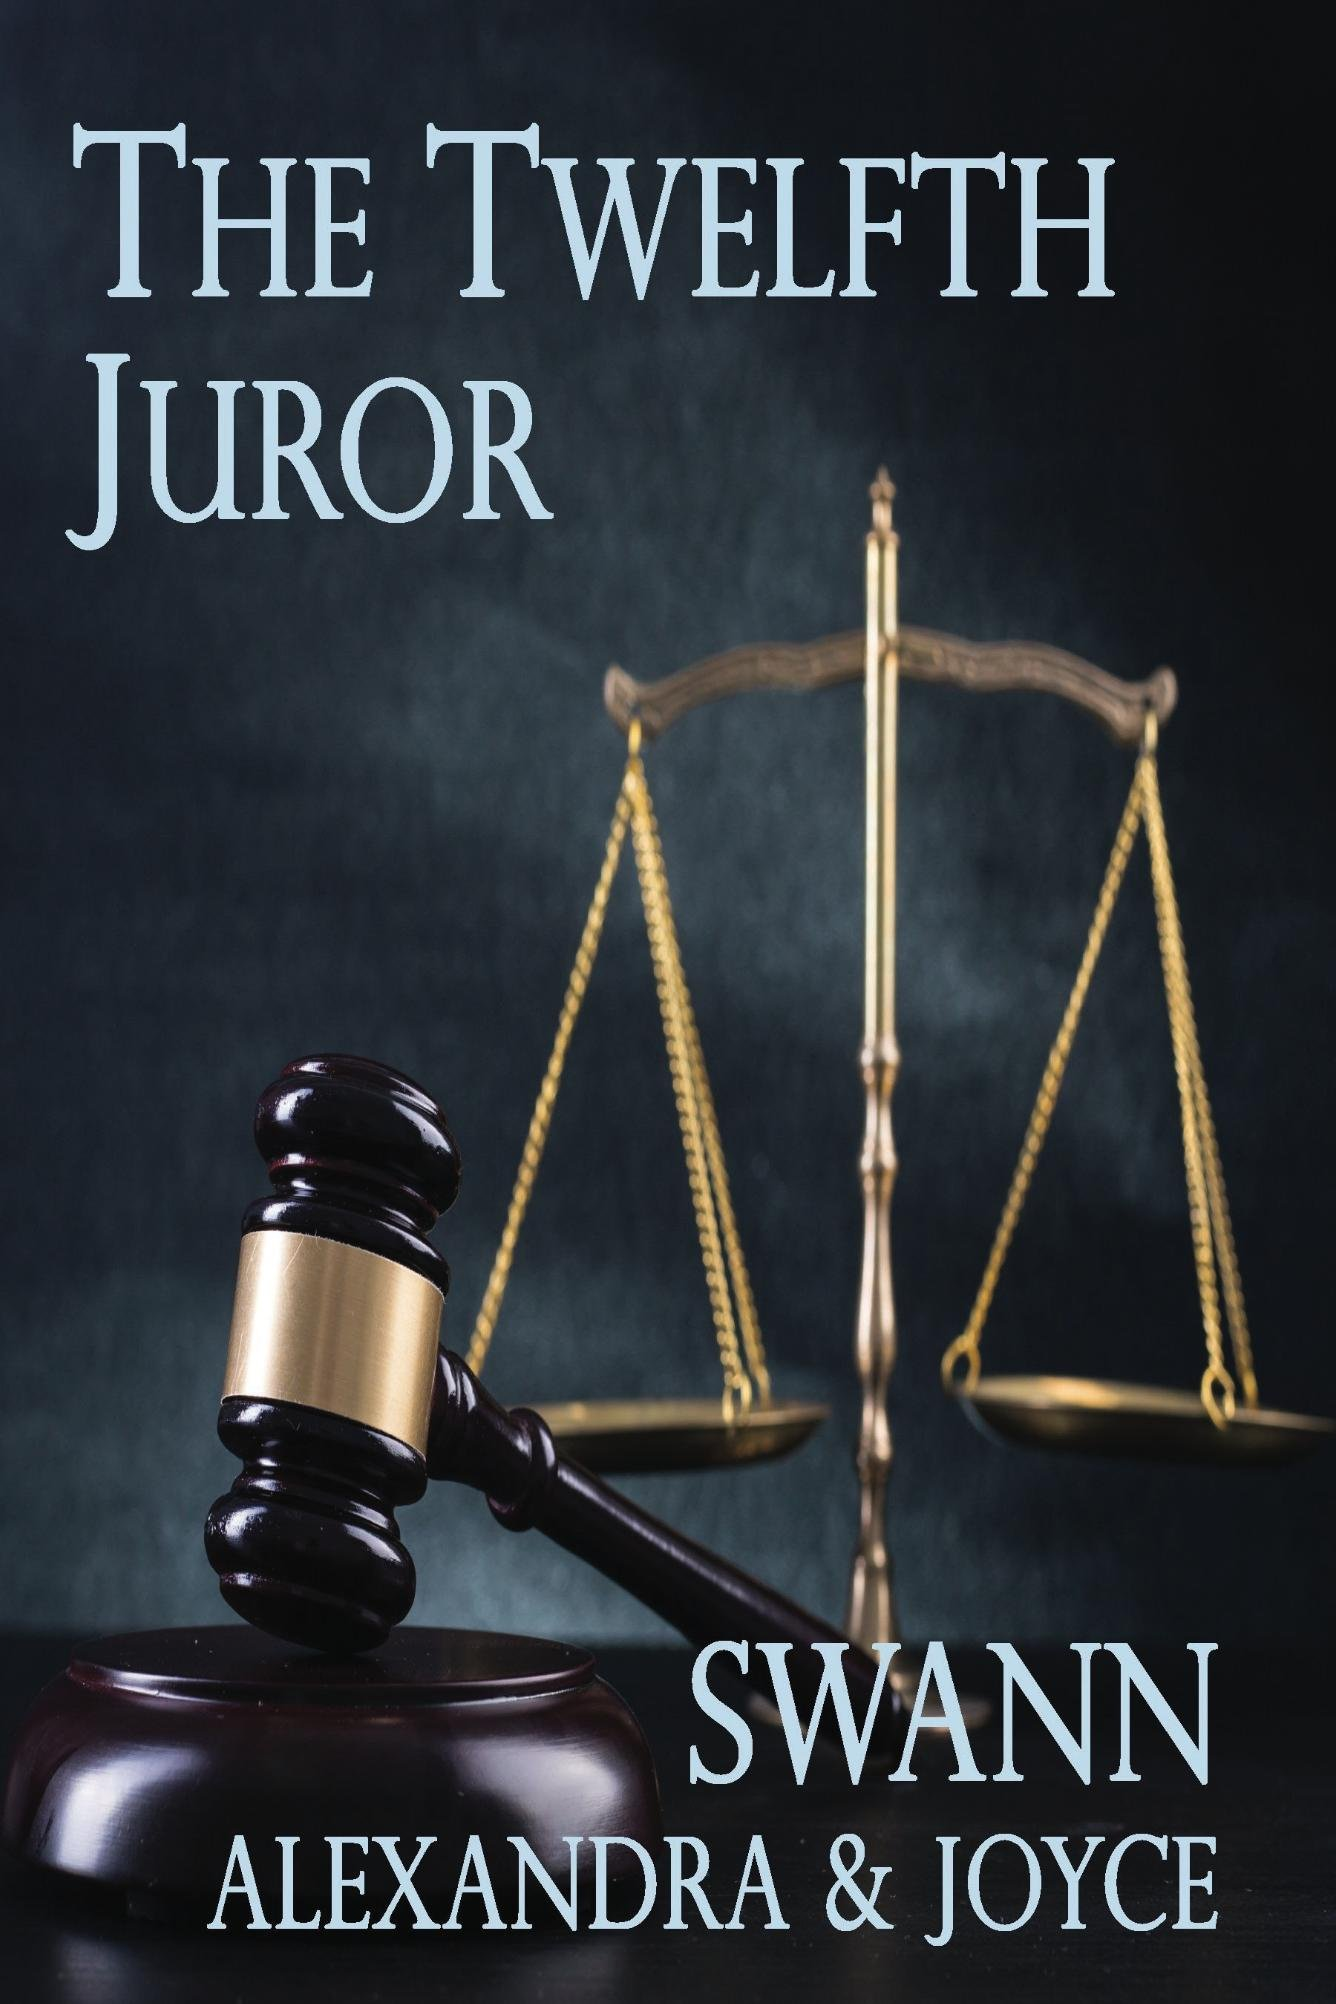 https://0201.nccdn.net/1_2/000/000/097/0bc/The_Twelfth_Juror_Cover_for_Kindle-1336x2004.jpg